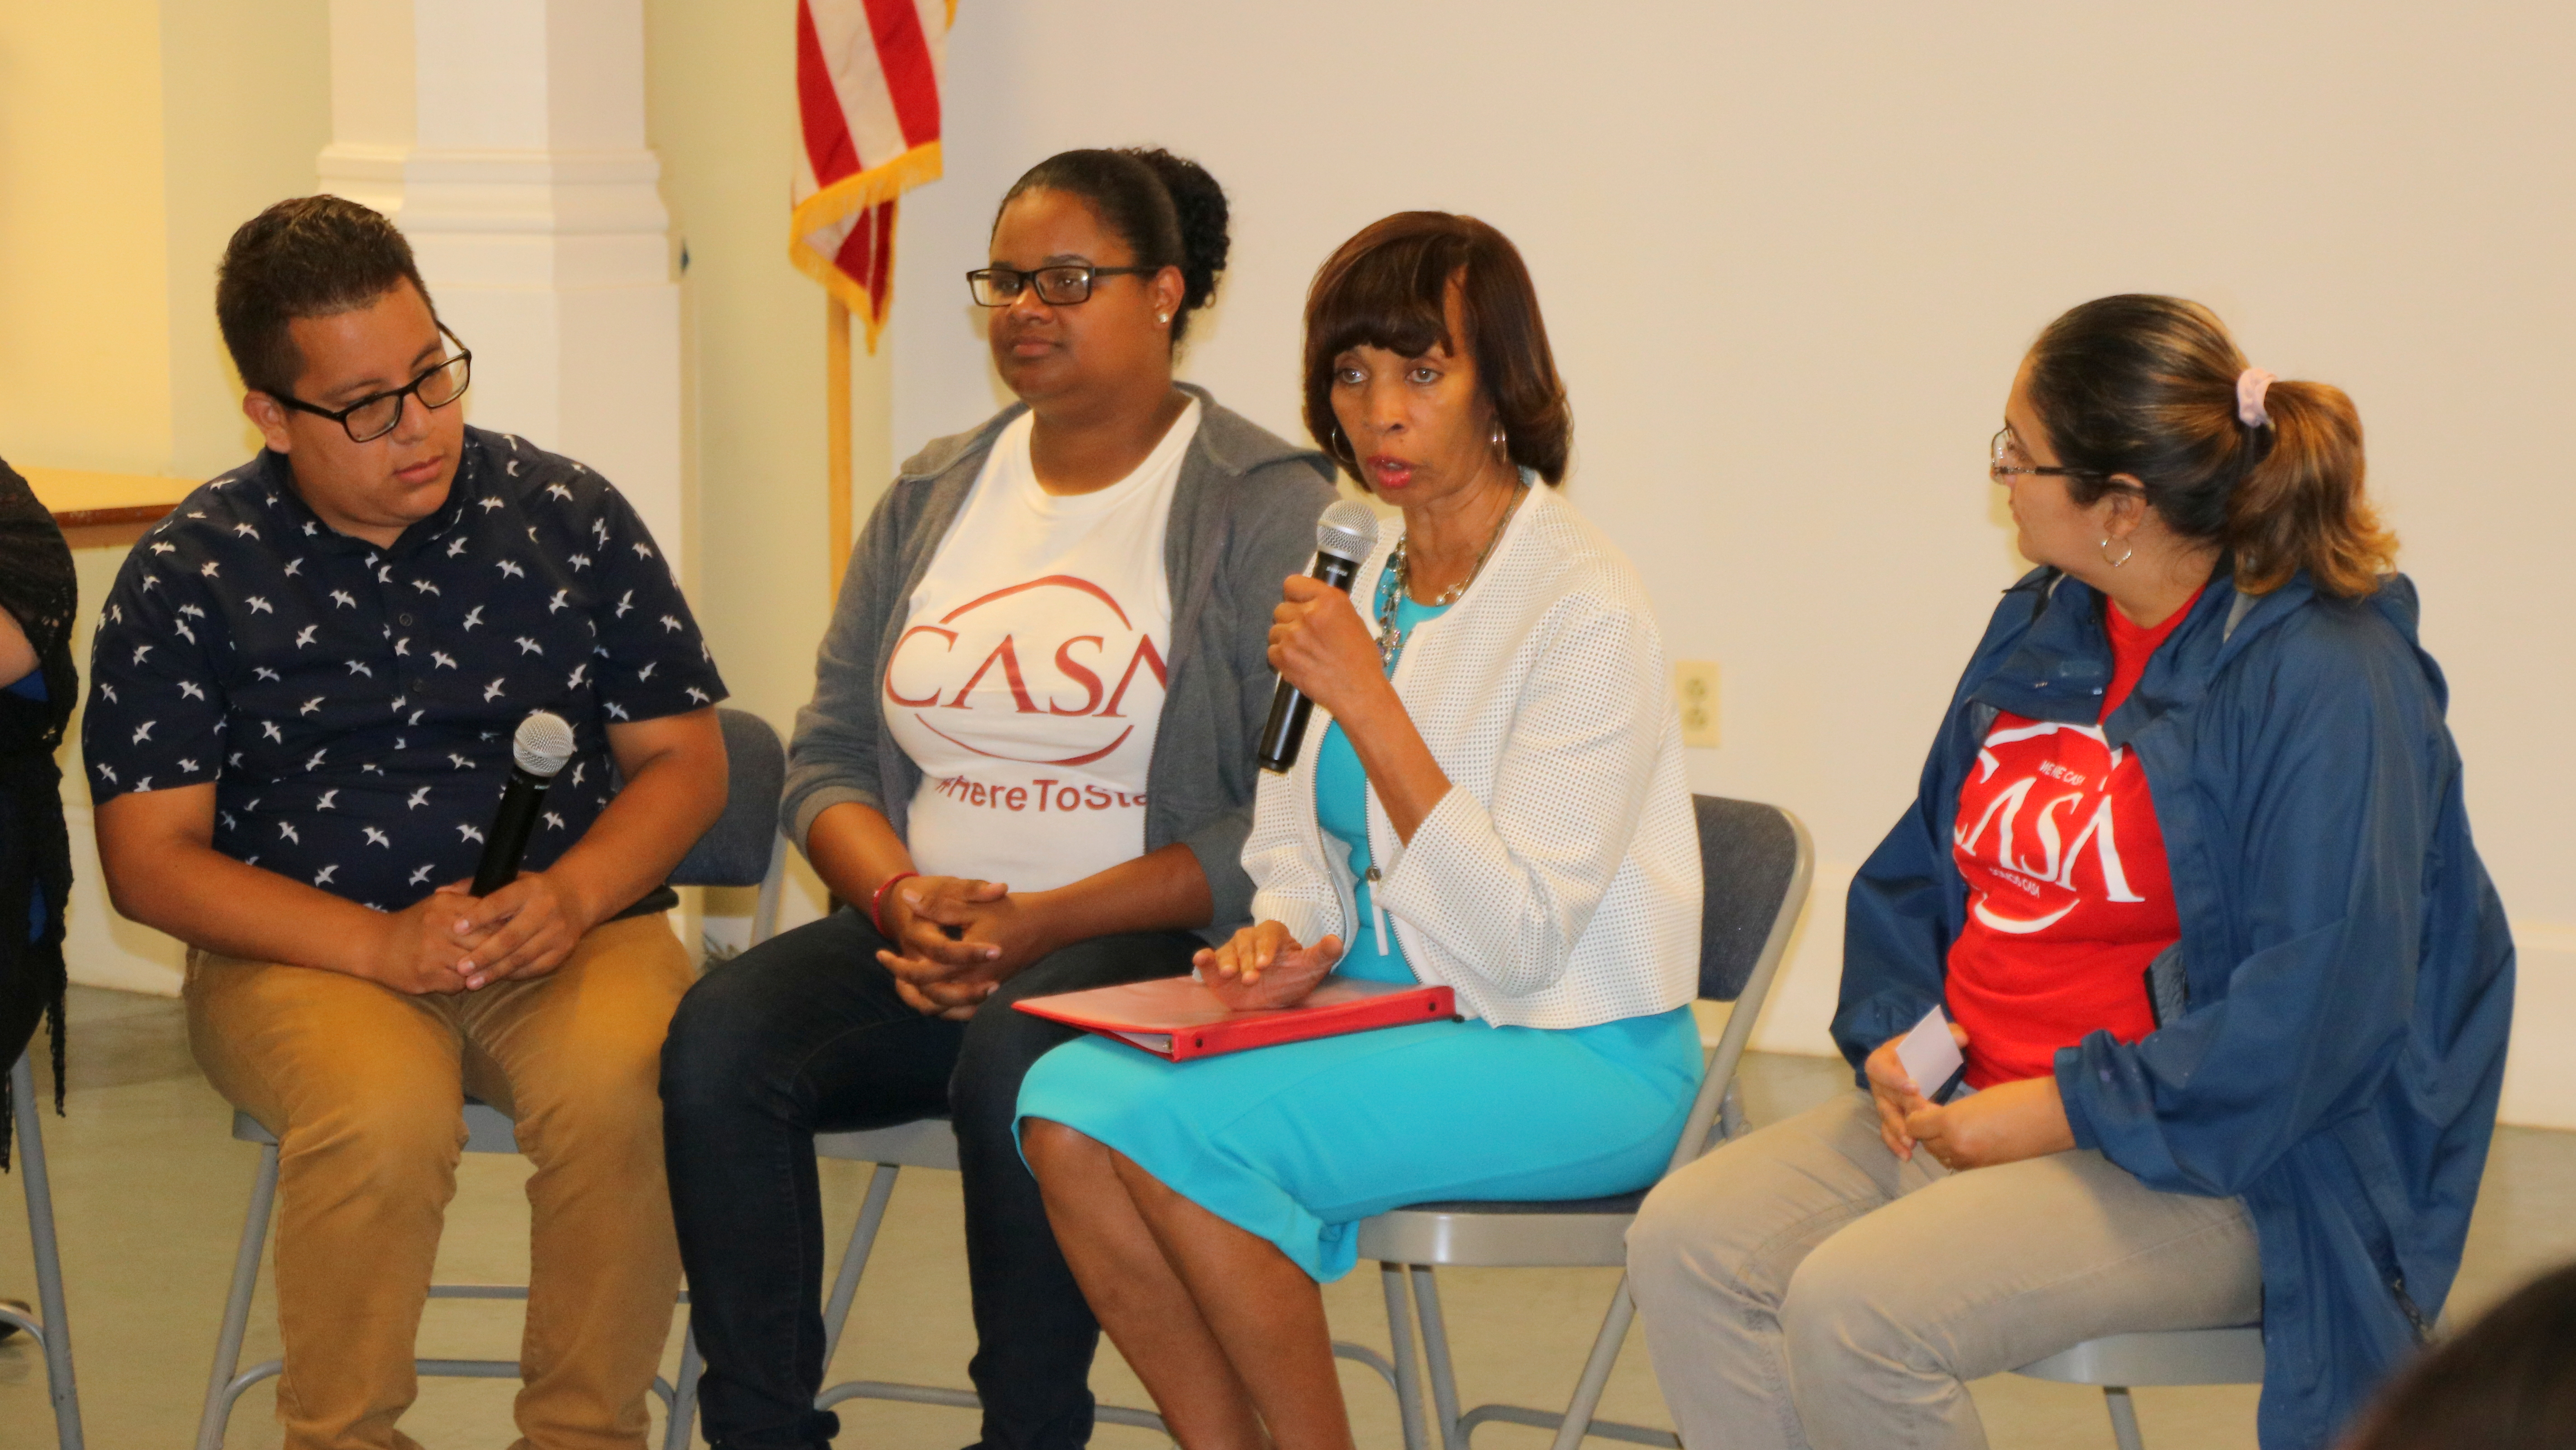 Baltimore Mayor Catherine Pugh says the city supports DACA recipients. At left, Jesus Perez, a CASA member and DACA participant. (Louis Krauss)